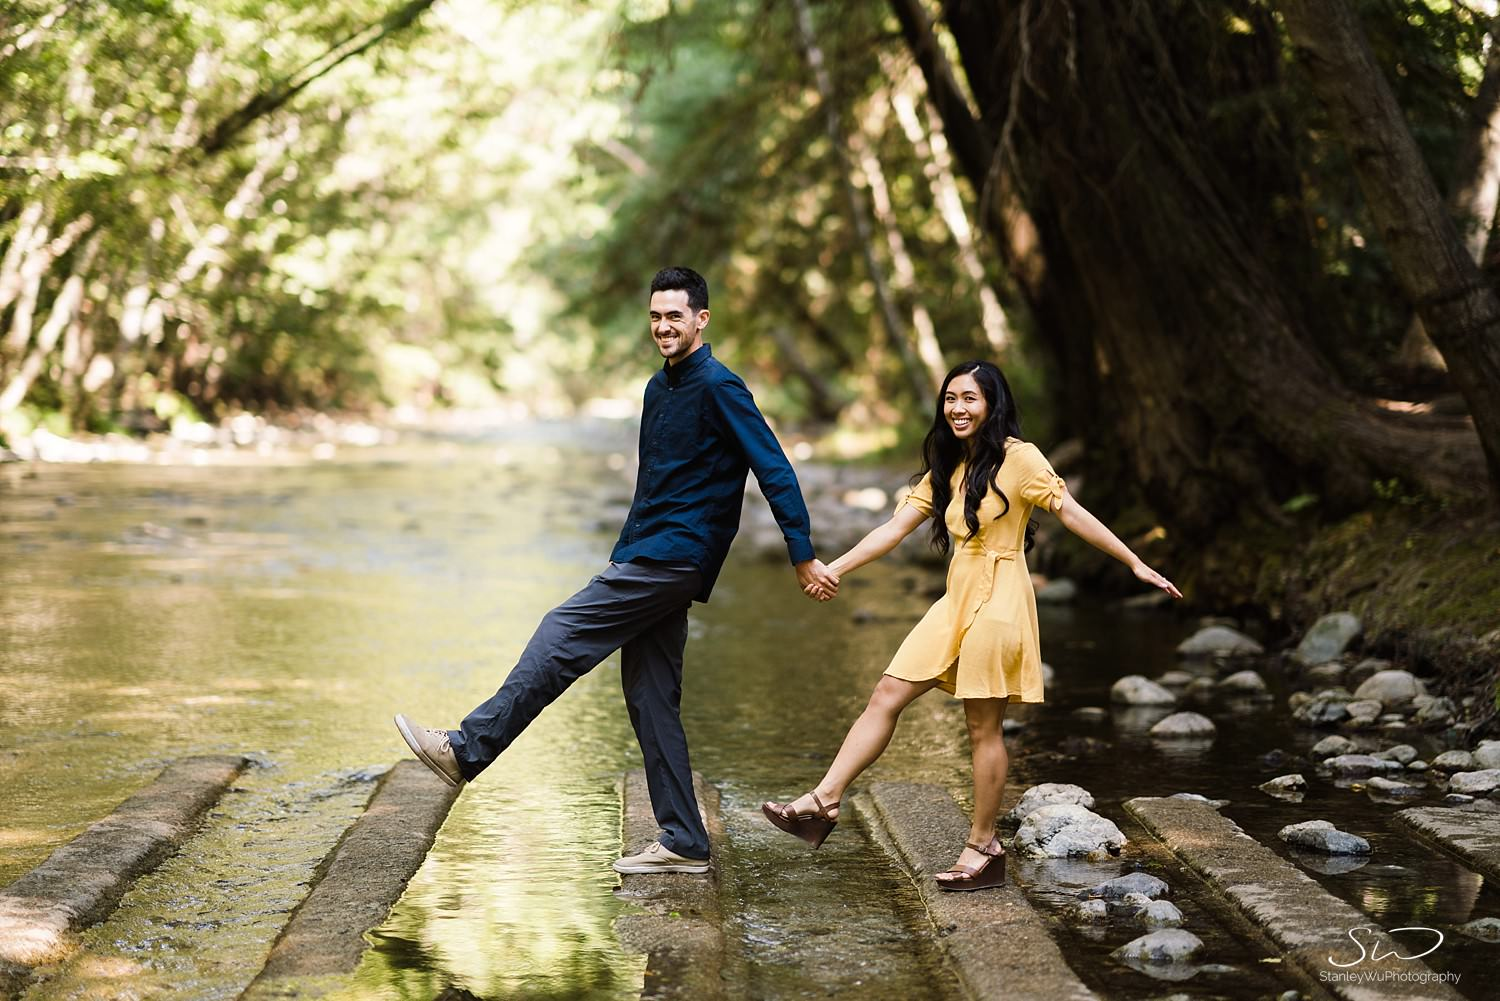 big-sur-travel-adventure-engagement-session_0012.jpg